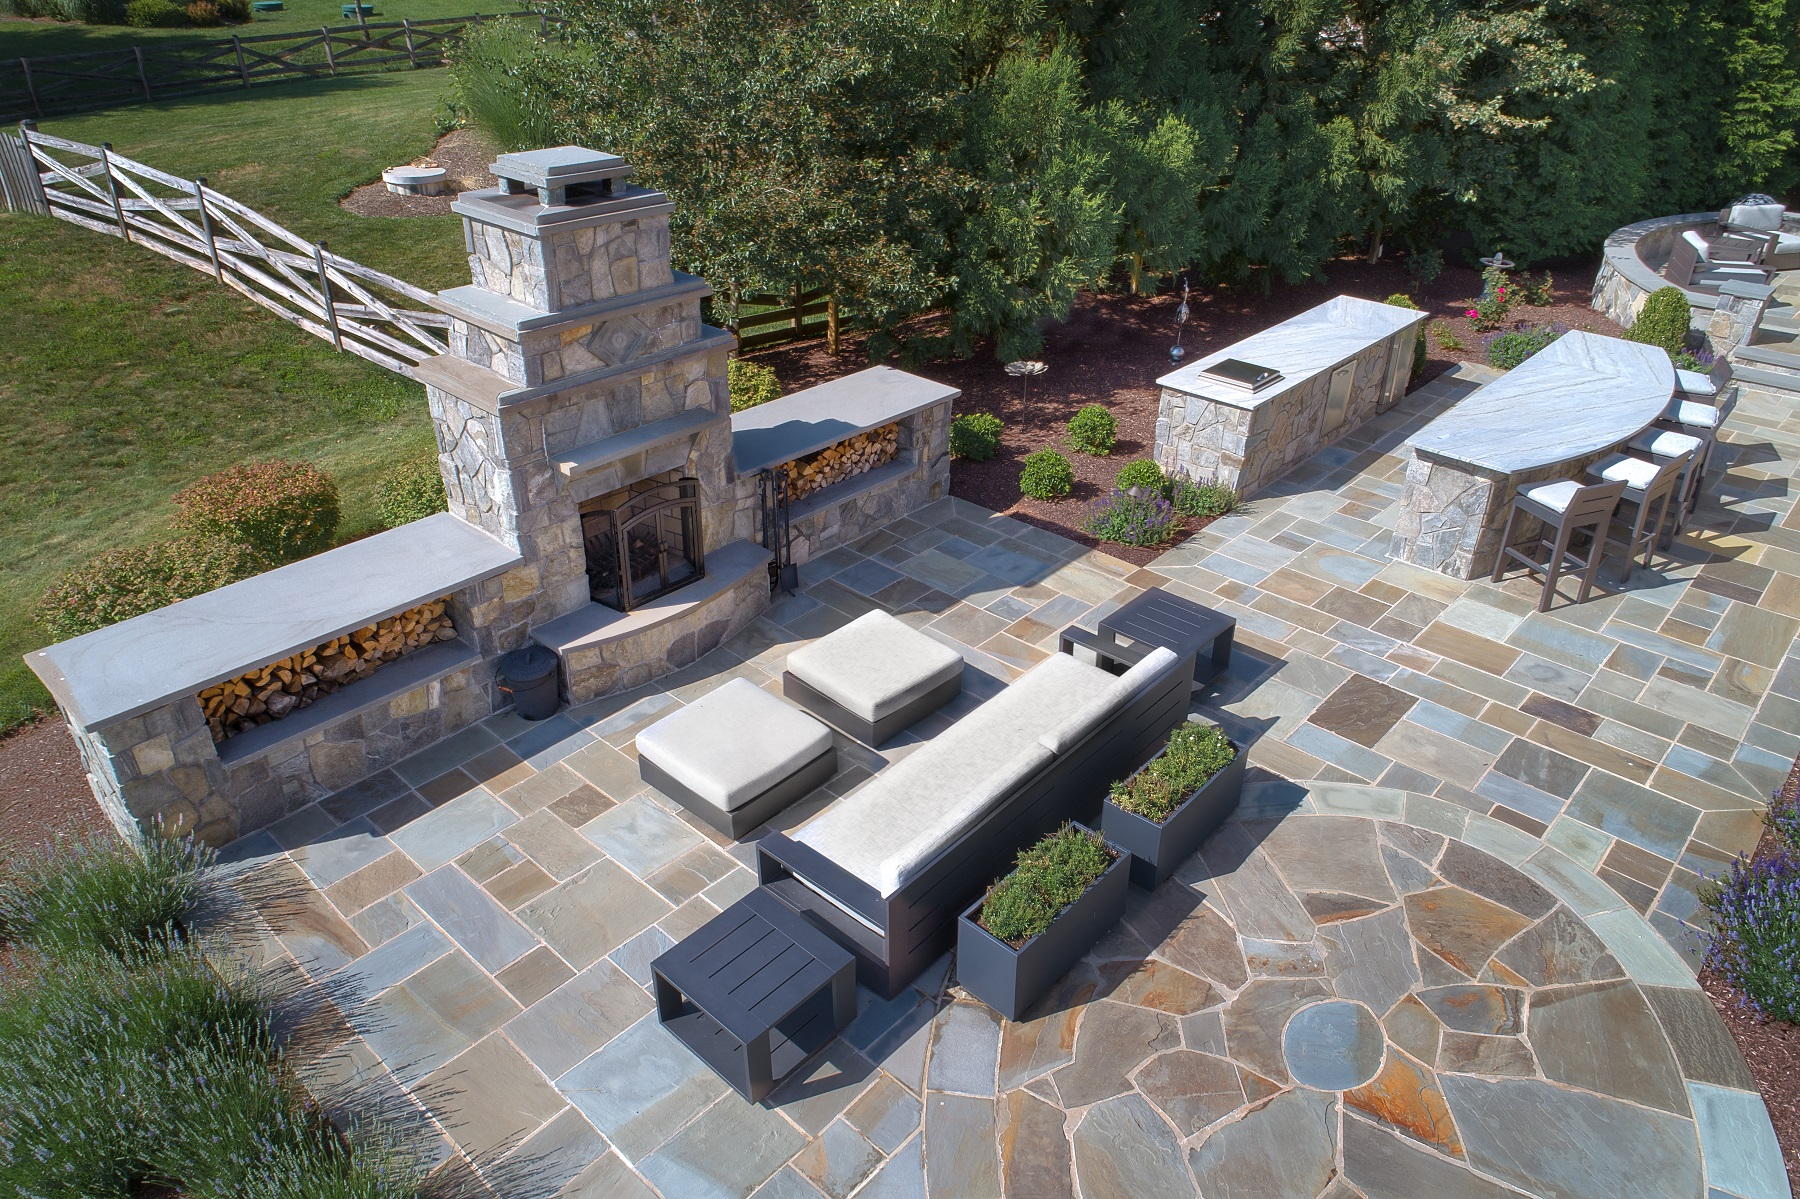 Fire feature and outdoor kitchen layout on your patio